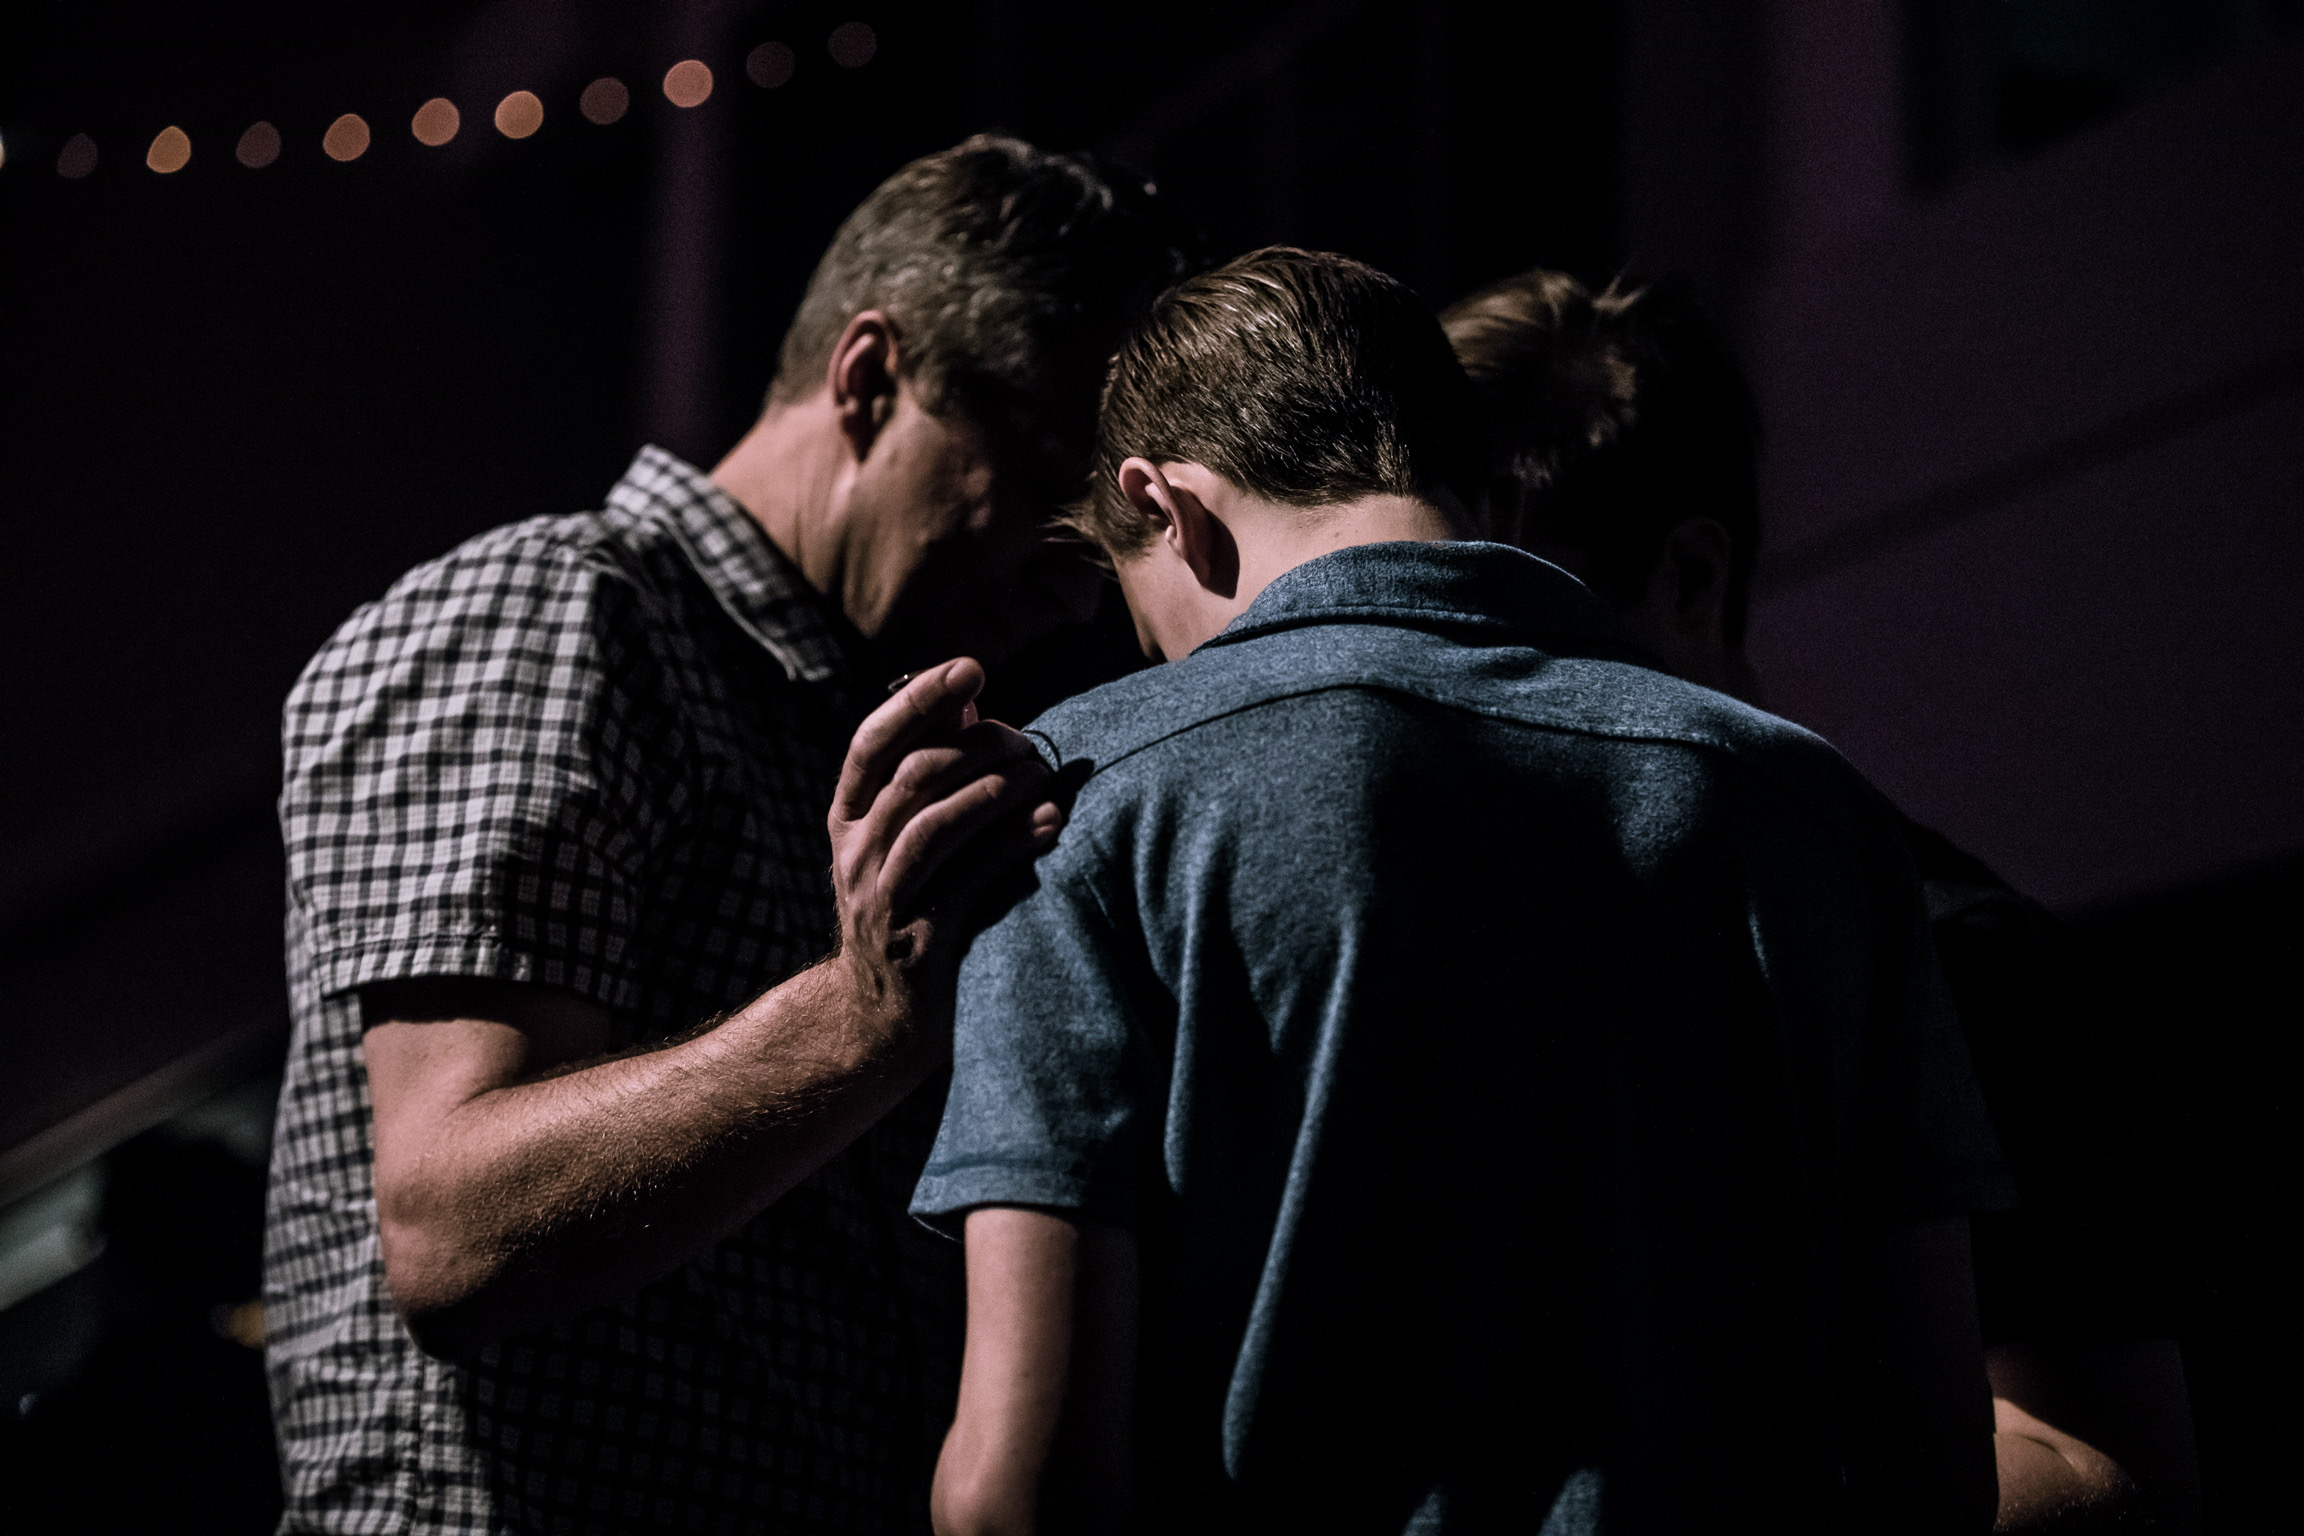 Need prayer? - We have a team of people ready to pray for you and the things that are weighing you down